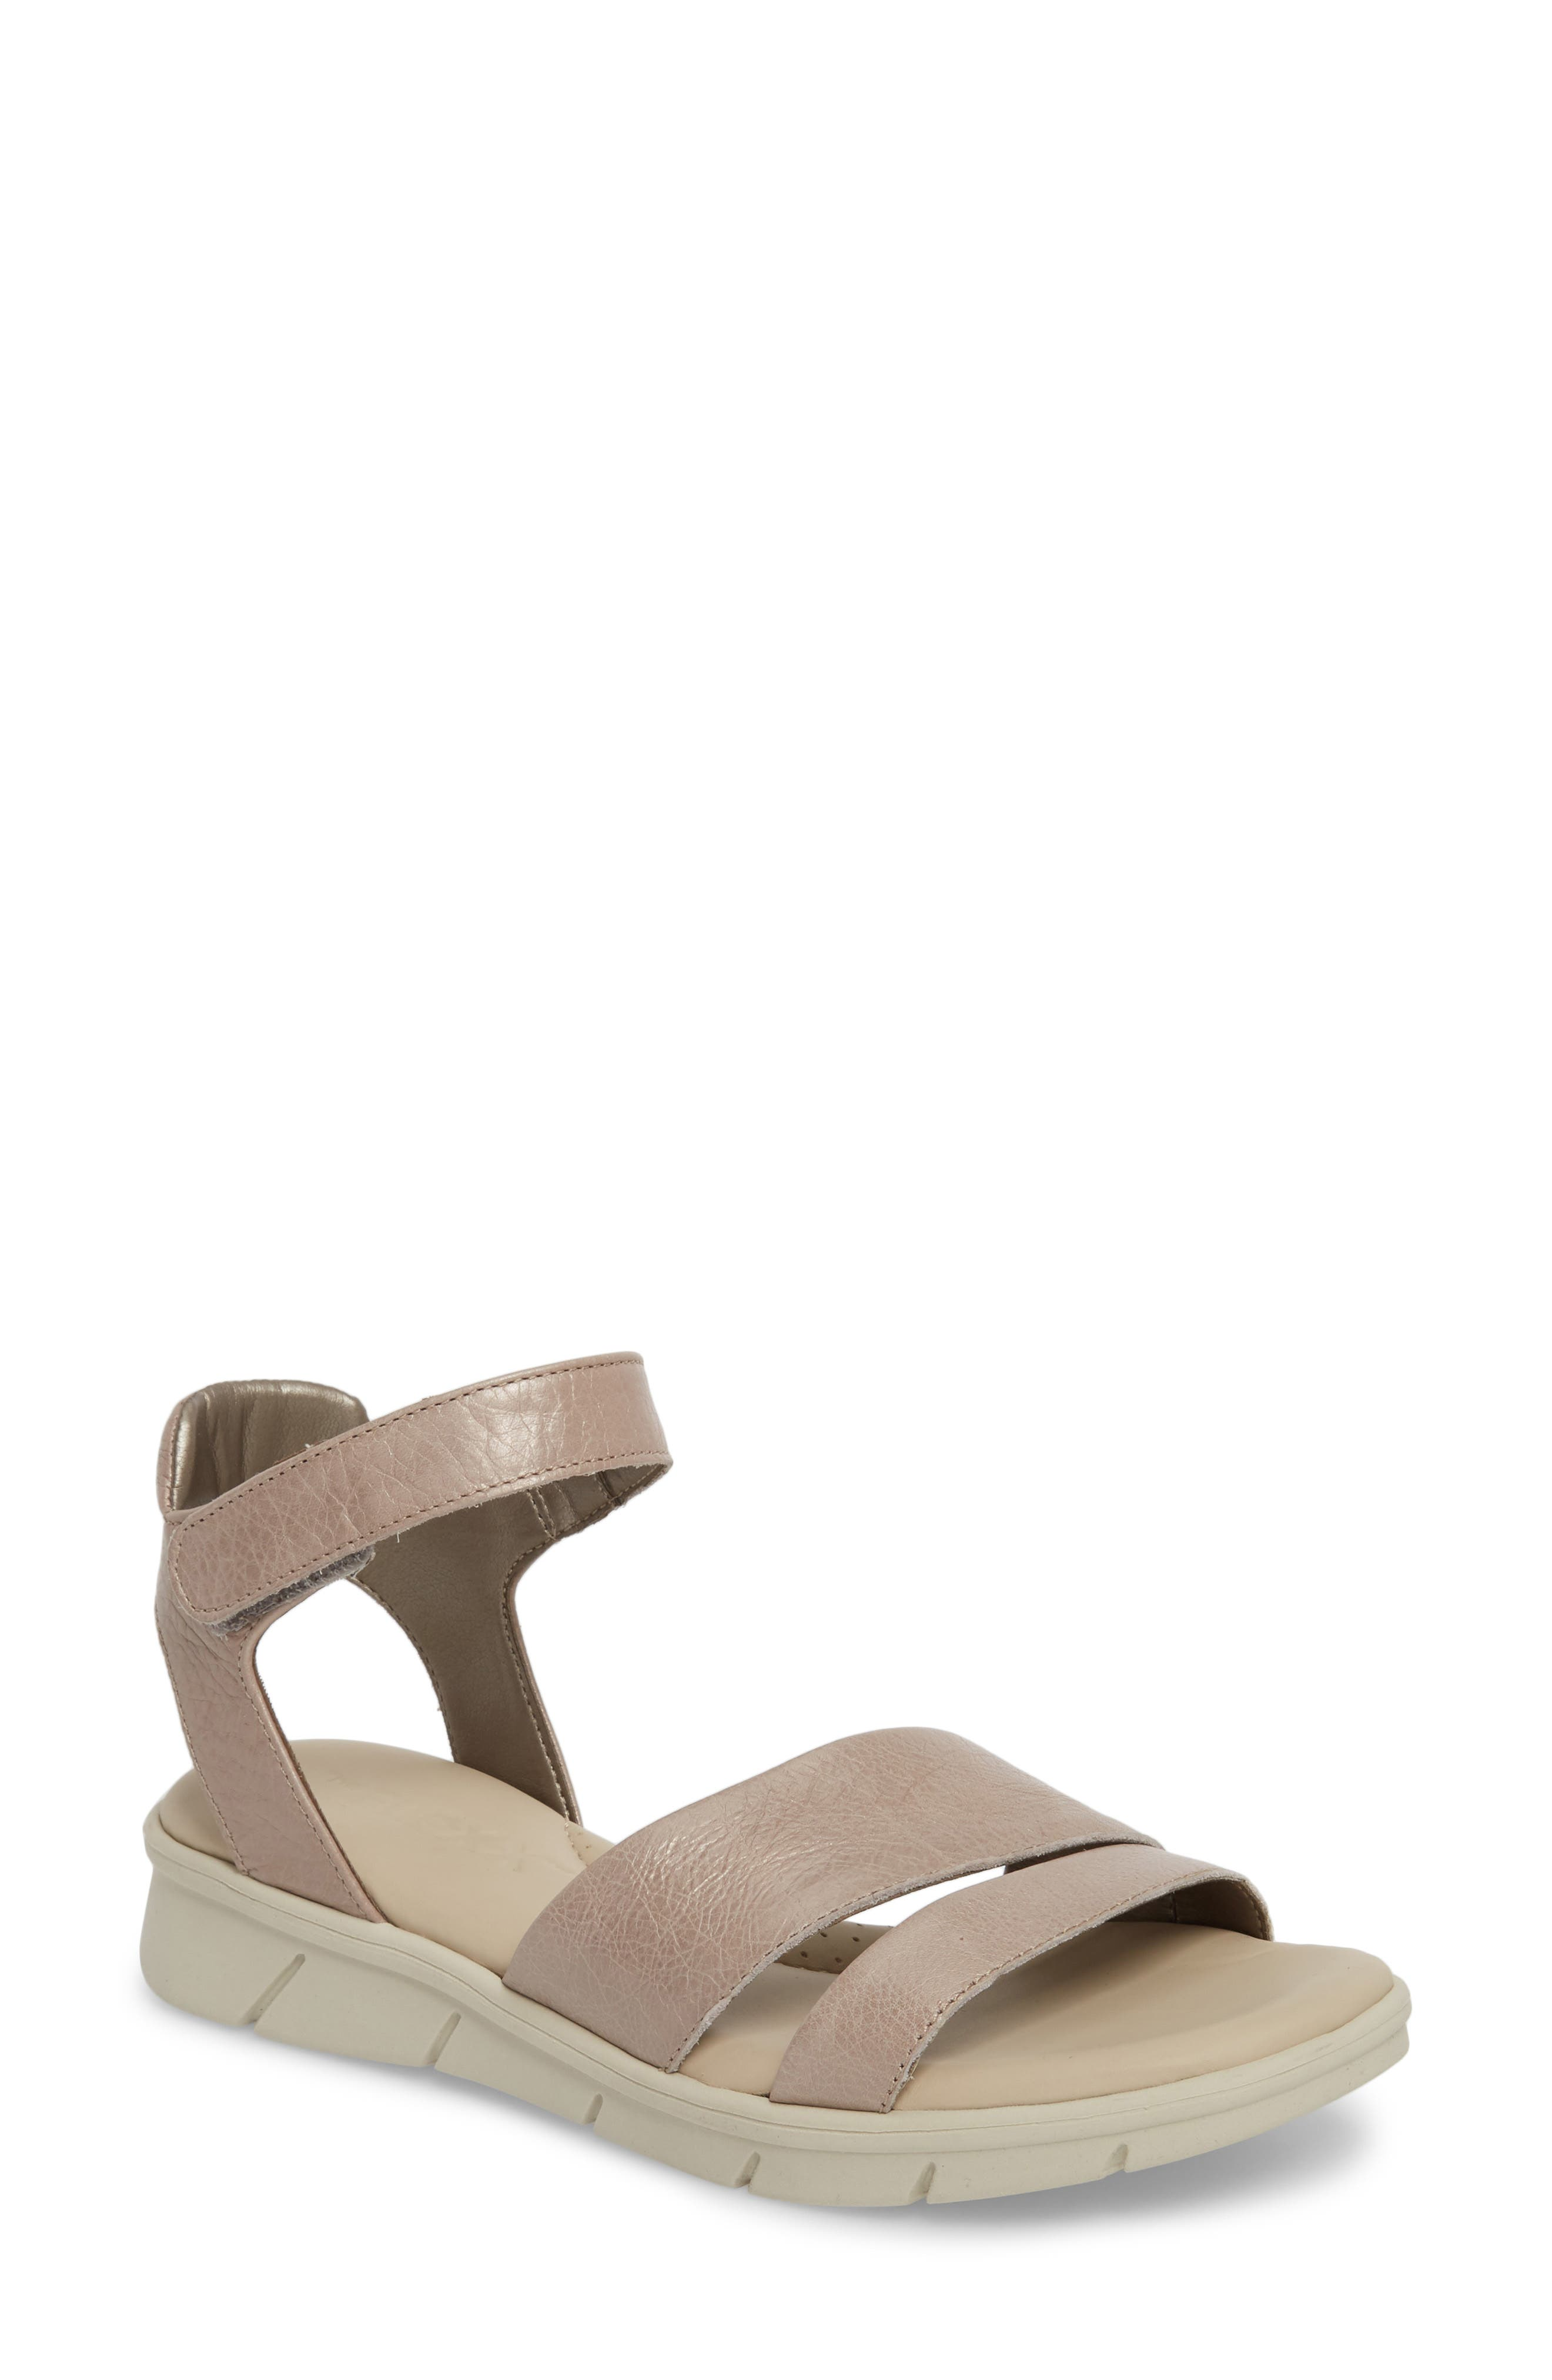 Crossover Ankle Strap Sandal,                             Main thumbnail 1, color,                             HAZE CRACKLED LEATHER